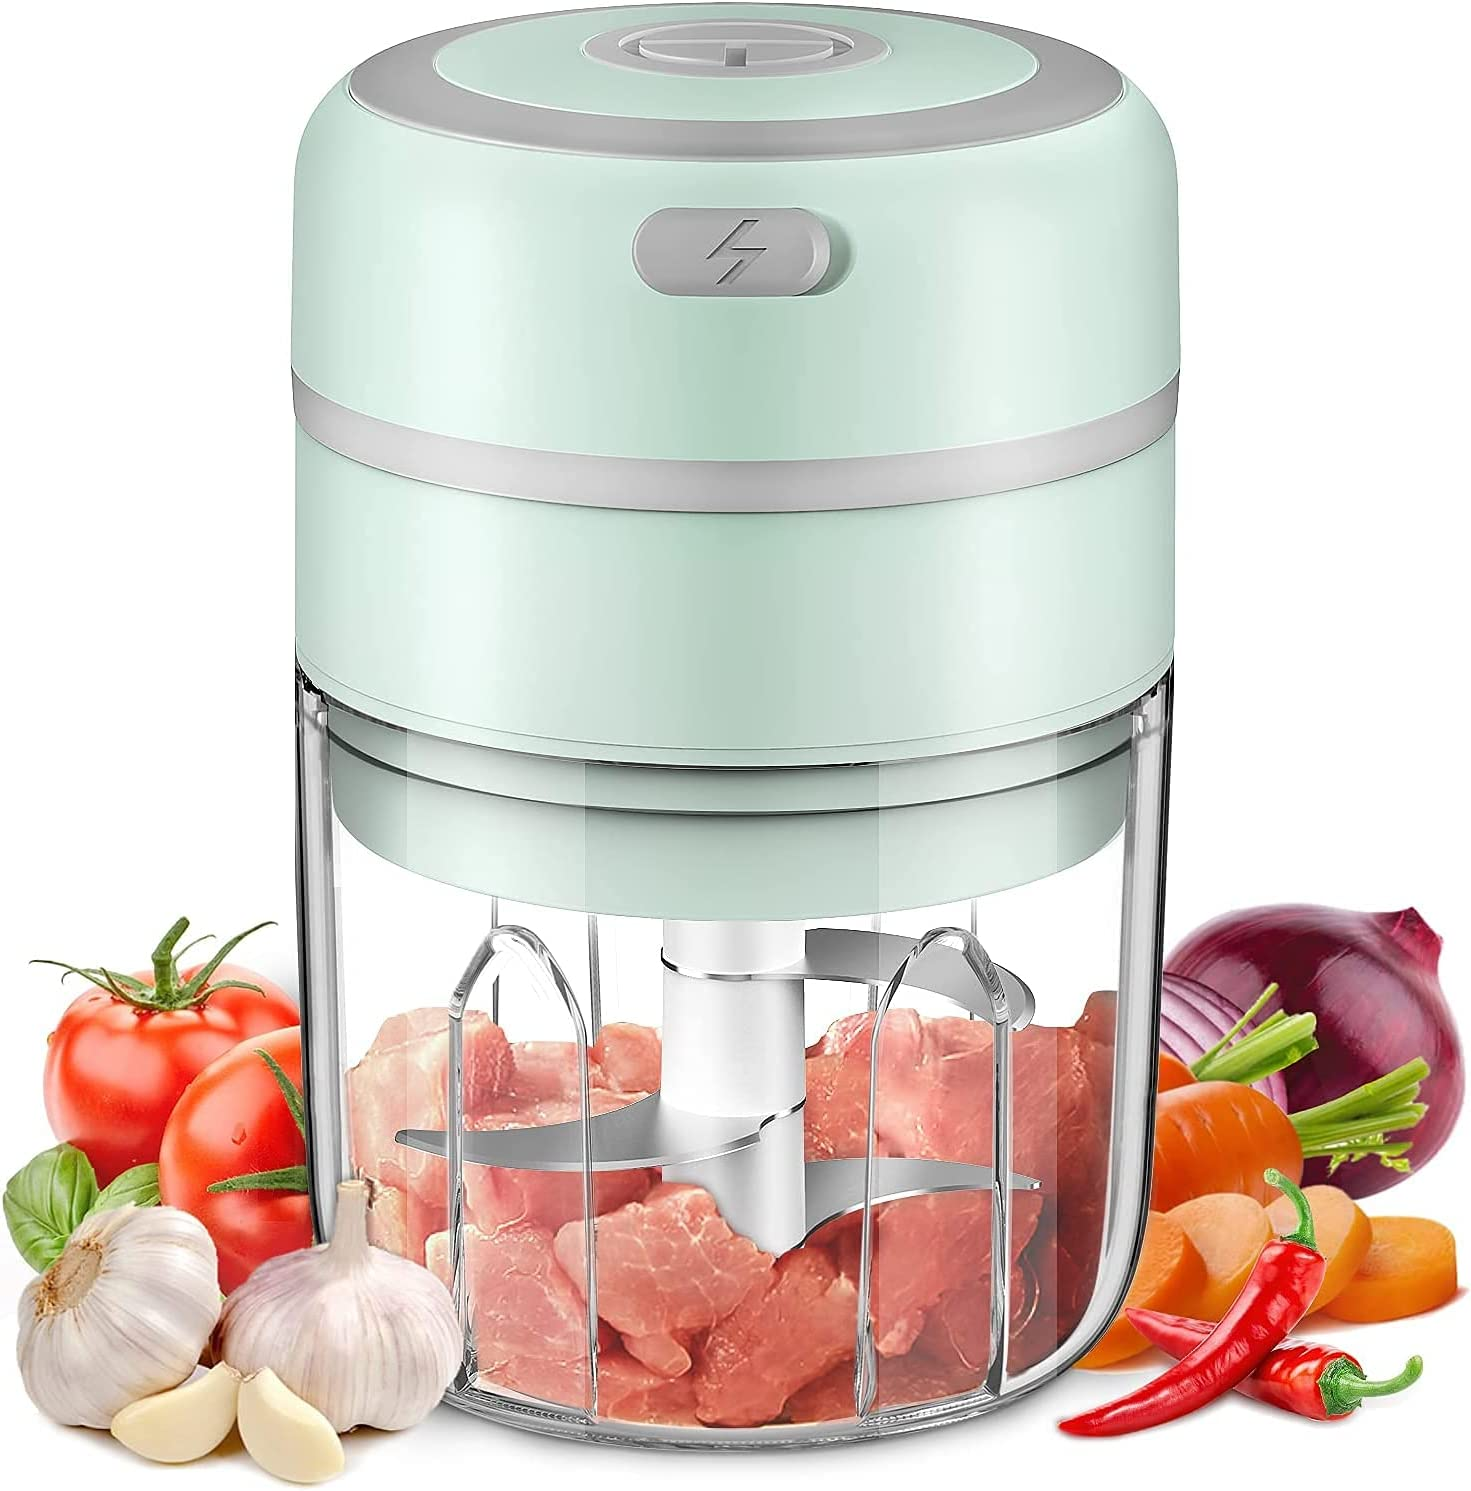 Electric Mini Garlic Chopper, Anzir Portable Cordless Vegetable Food Processor, Handheld USB Rechargeable Powerful Mincer for Onion, Grinder(Green,high-250ml)